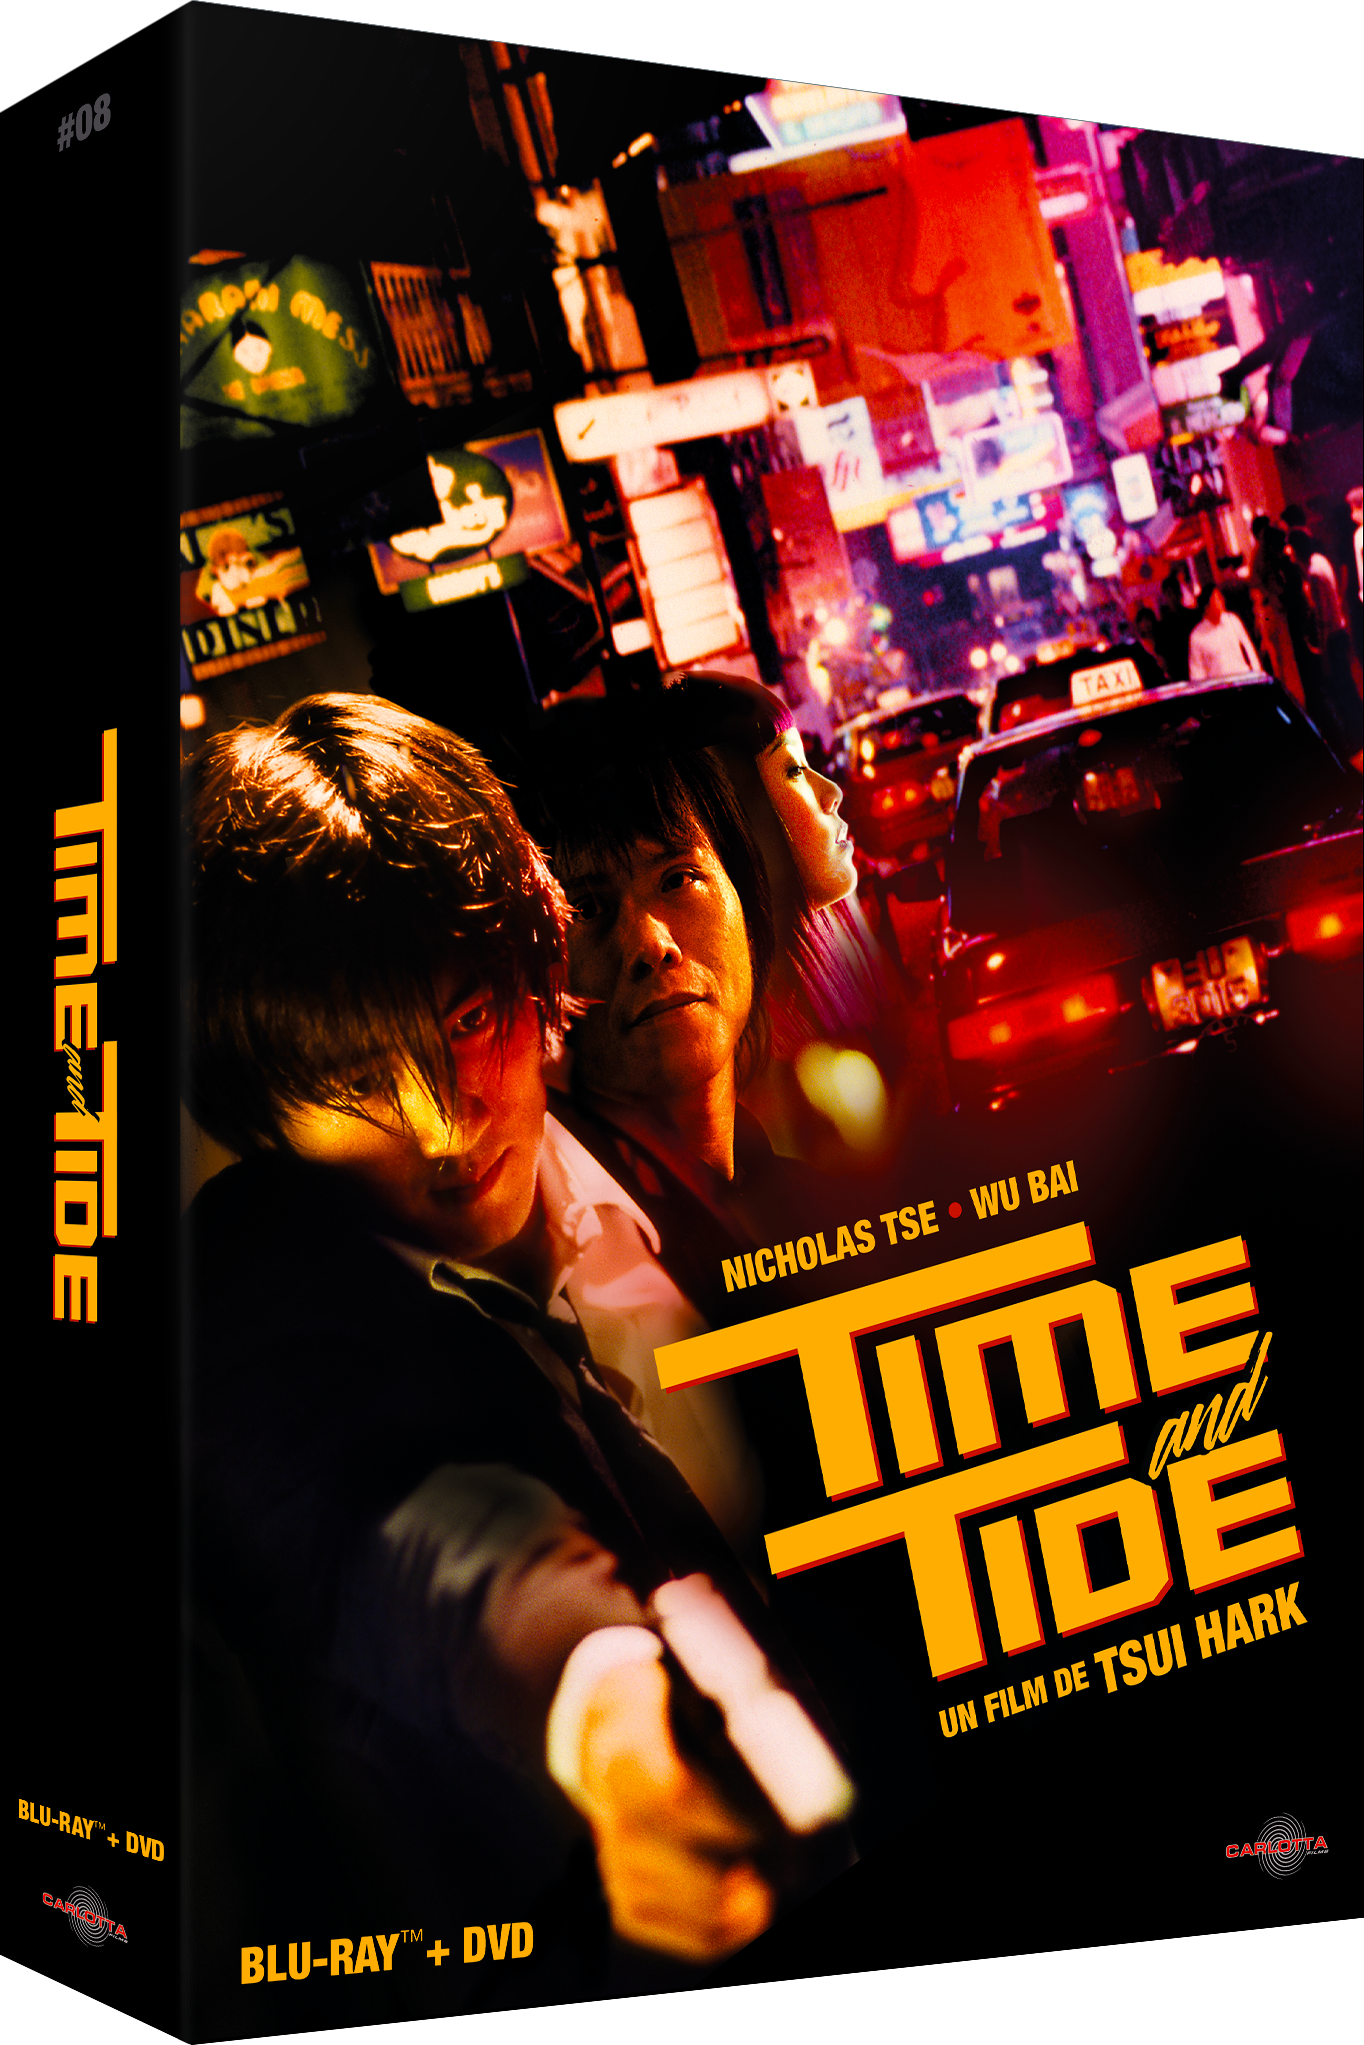 Time and Tide - Édition Prestige Limitée Combo Blu-ray/DVD + Memorabilia - CARLOTTA FILMS - La Boutique